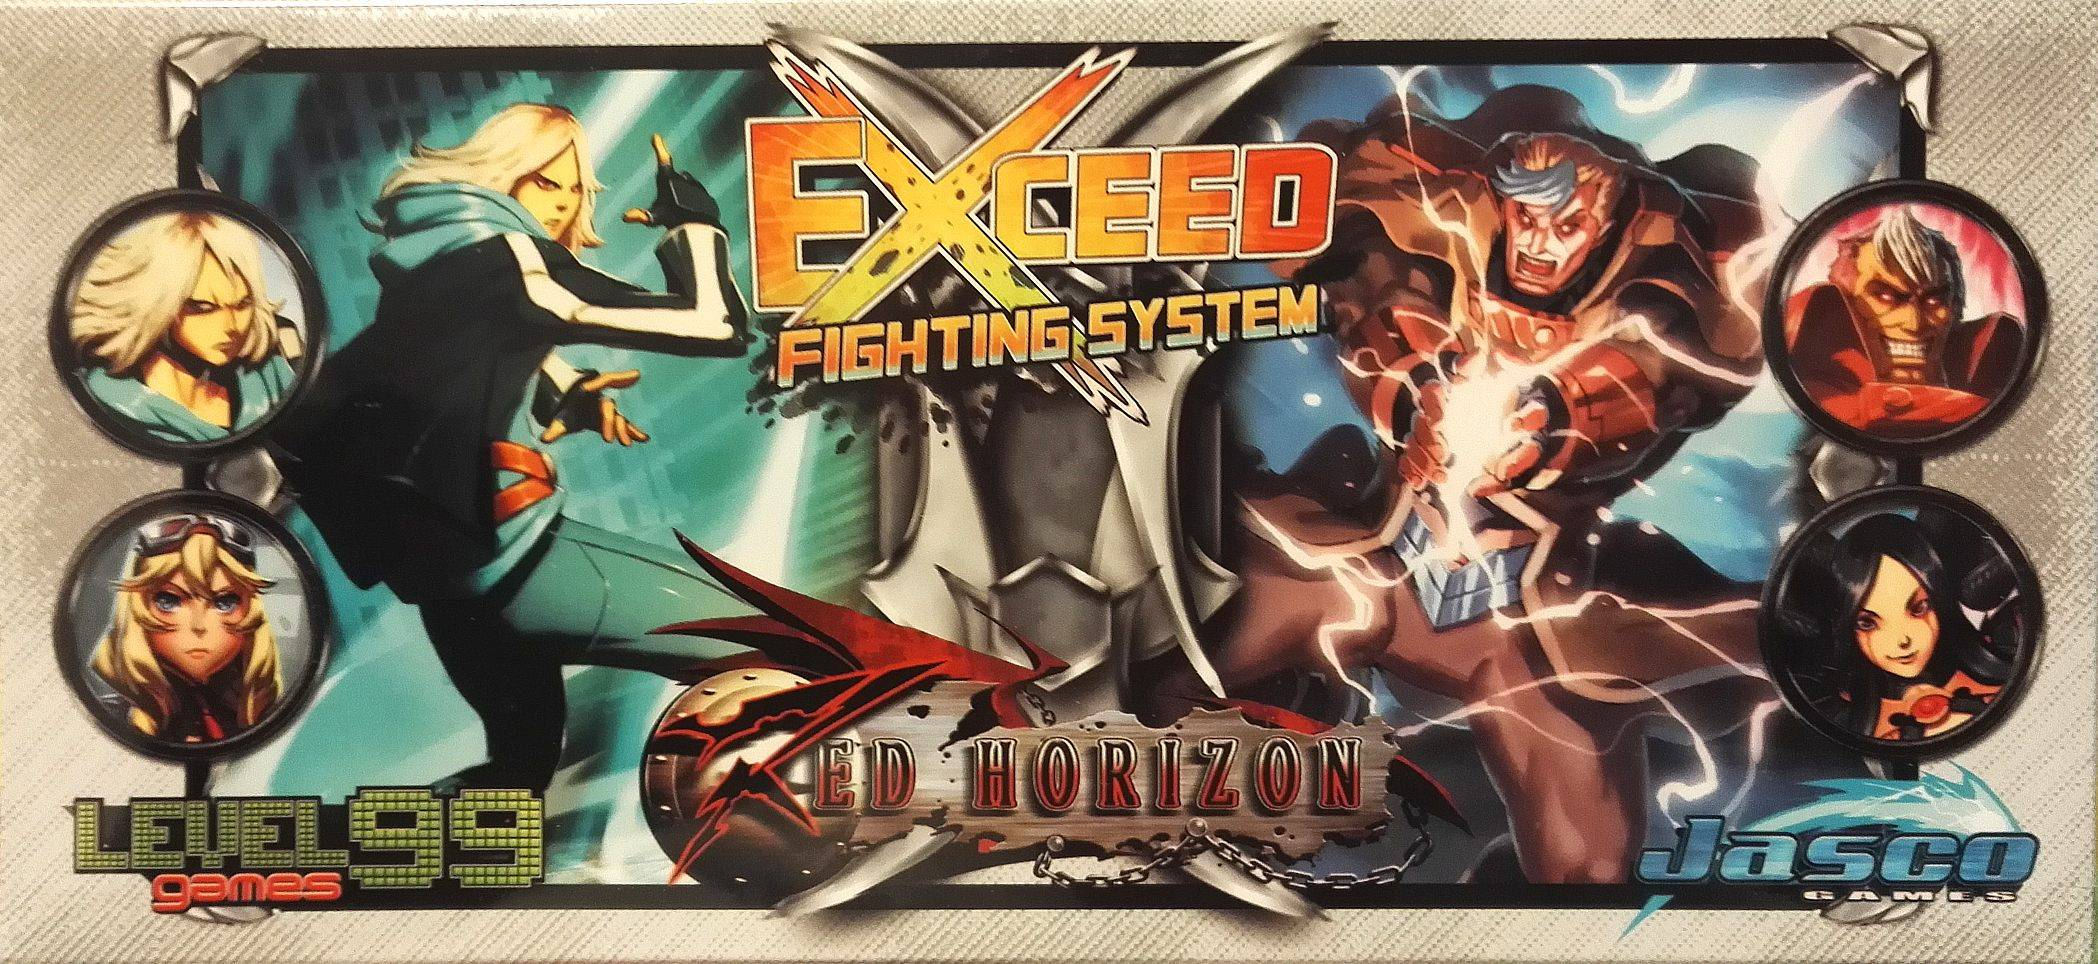 Vincent Exceed Red Horizon Reese Kortspill Reese/Heidi vs Vincent/Ne